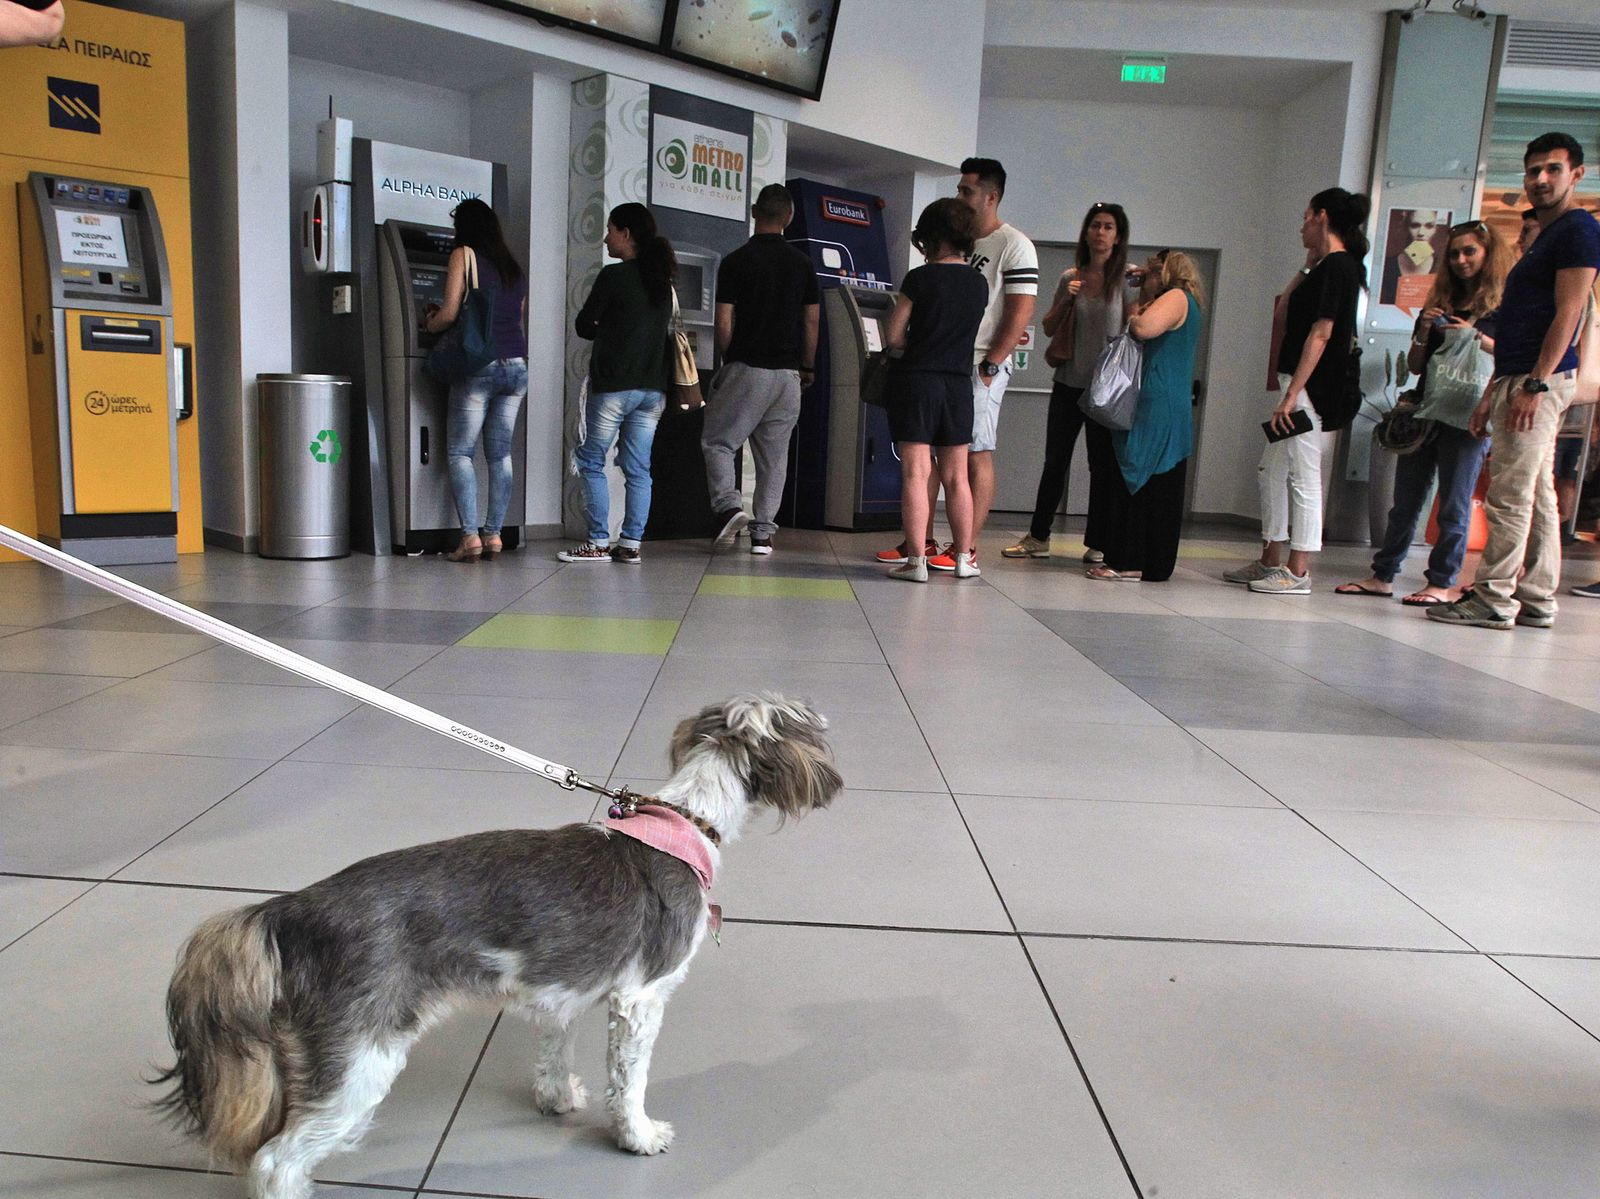 People queue at ATM to withdraw money in Athens